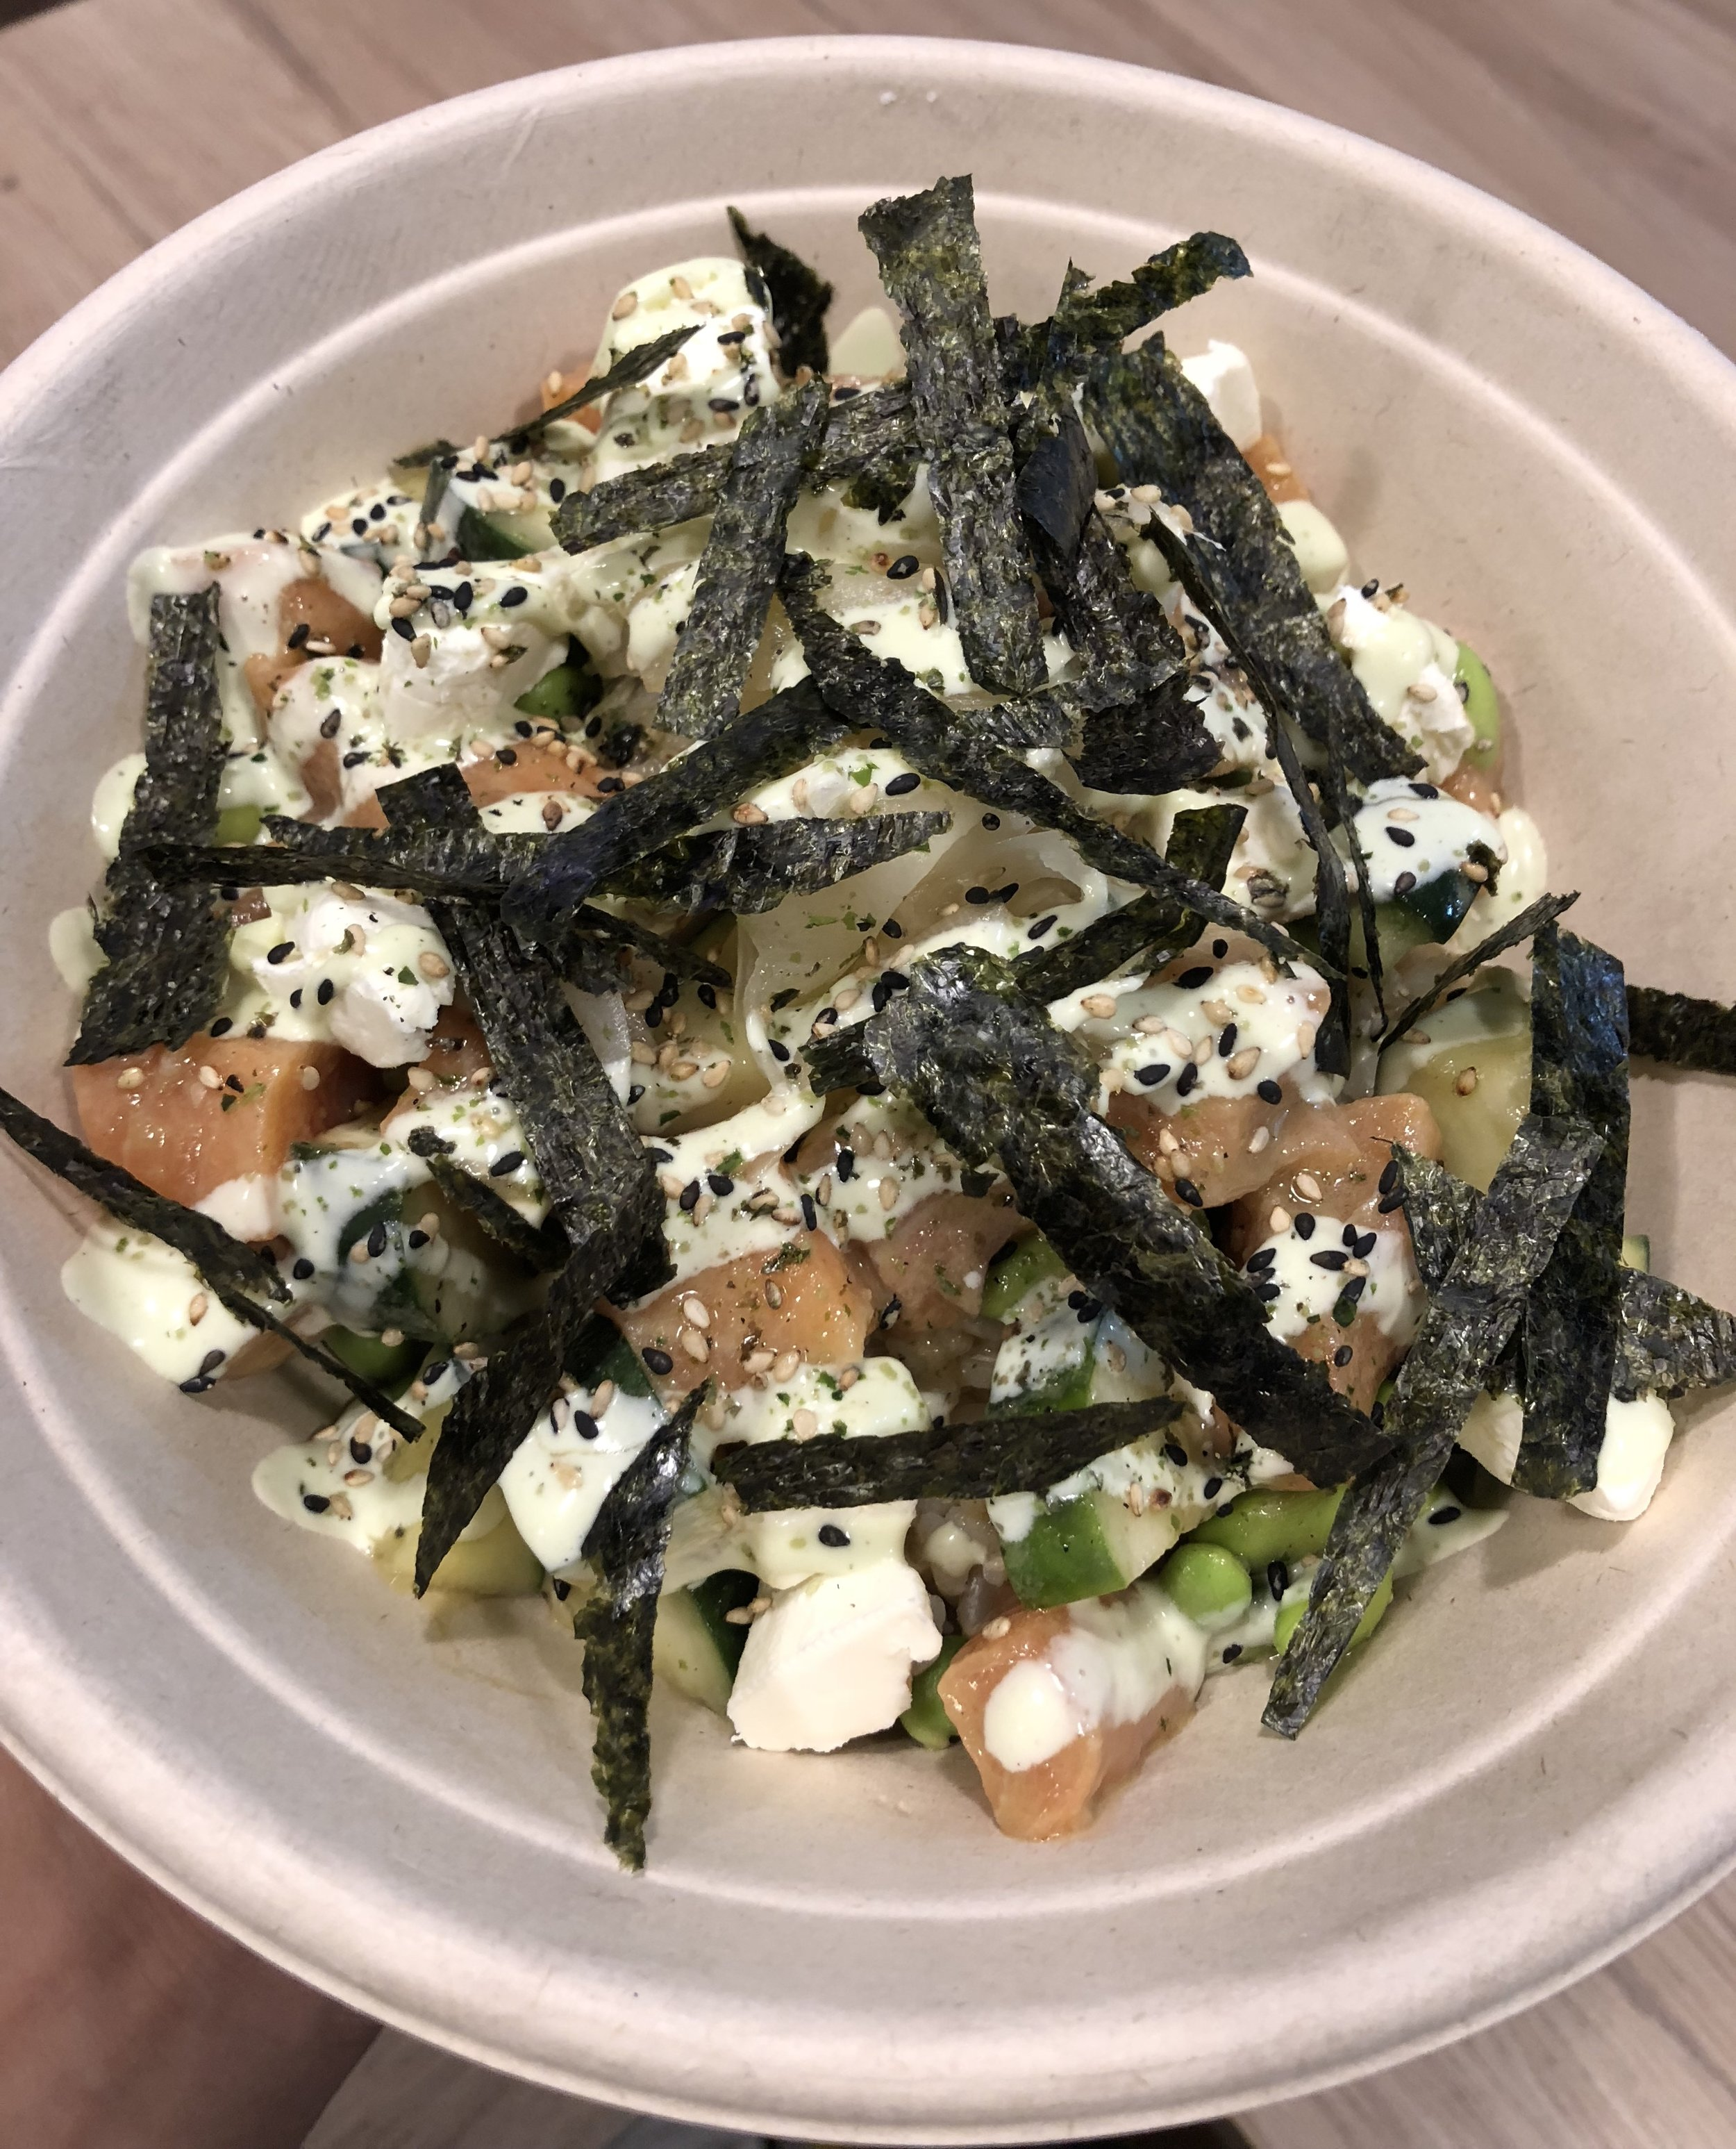 GATEWAY   SALMON mixed with CUCUMBER, EDAMAME;  marinated in WASABI PONZU;  topped with PICKLED GINGER, CREAM CHEESE, FURIKAKE, NORI;  with WASABI MAYO drizzle.